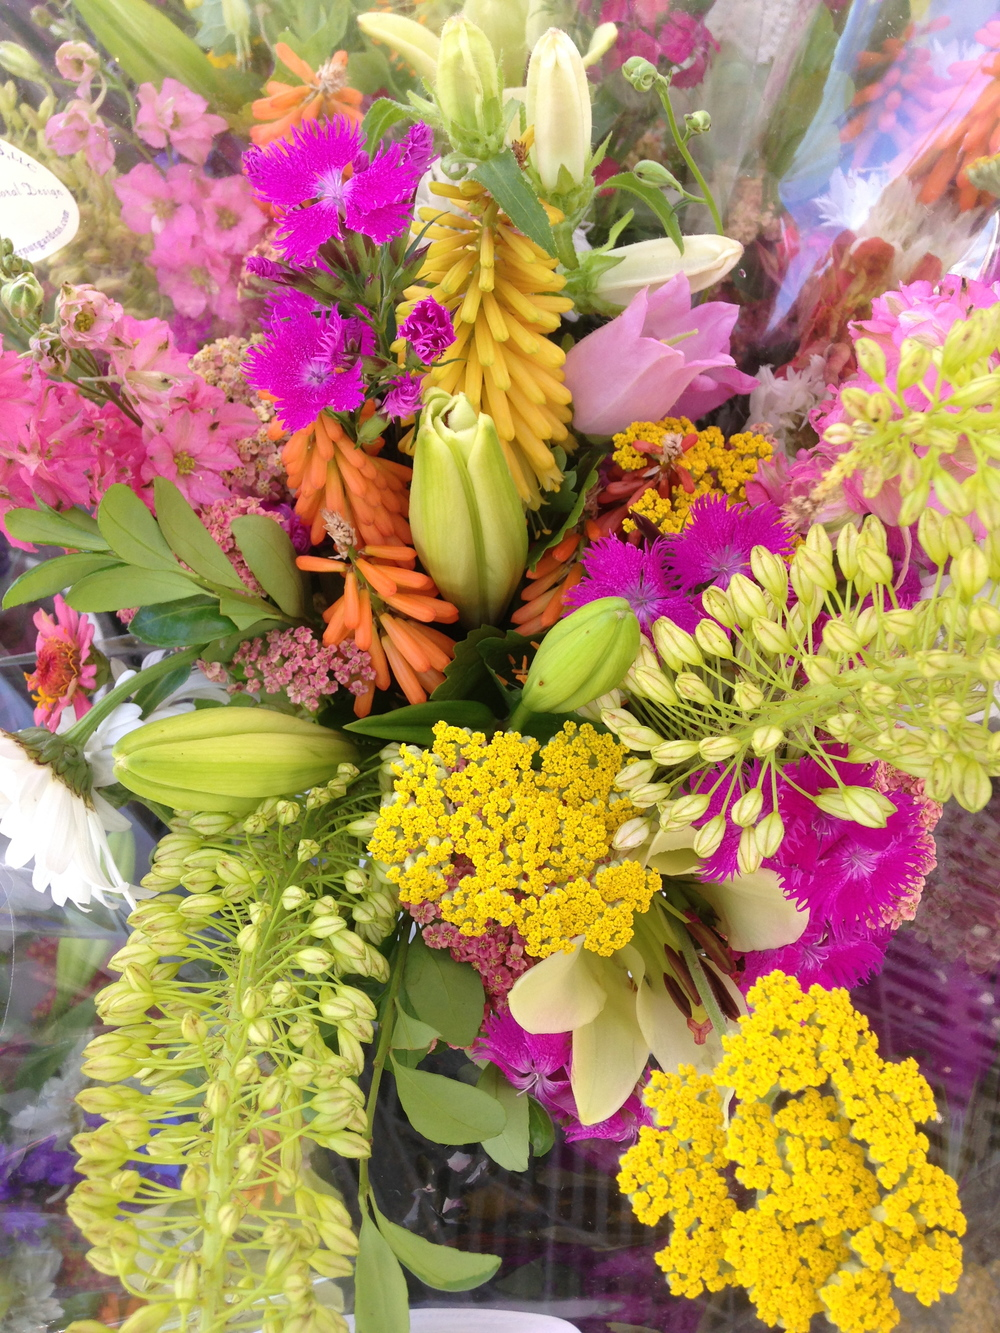 The bright yellow yarrow in lower right puts real zip into any bouquet. Yellow and orange red hot pokers can be seen in the center of this grouping.